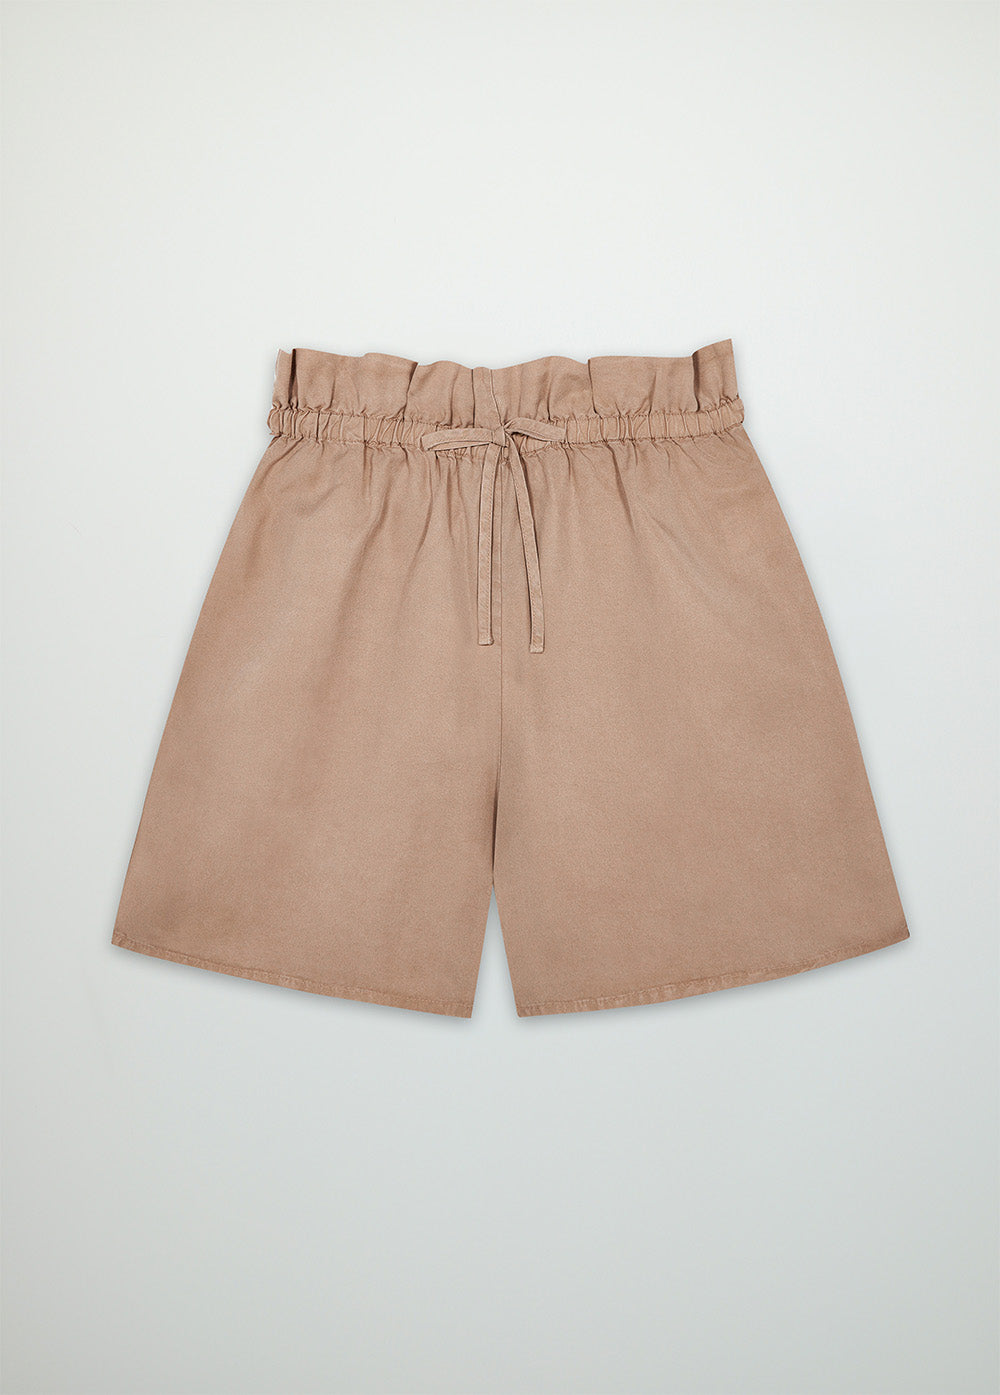 Angie woman short